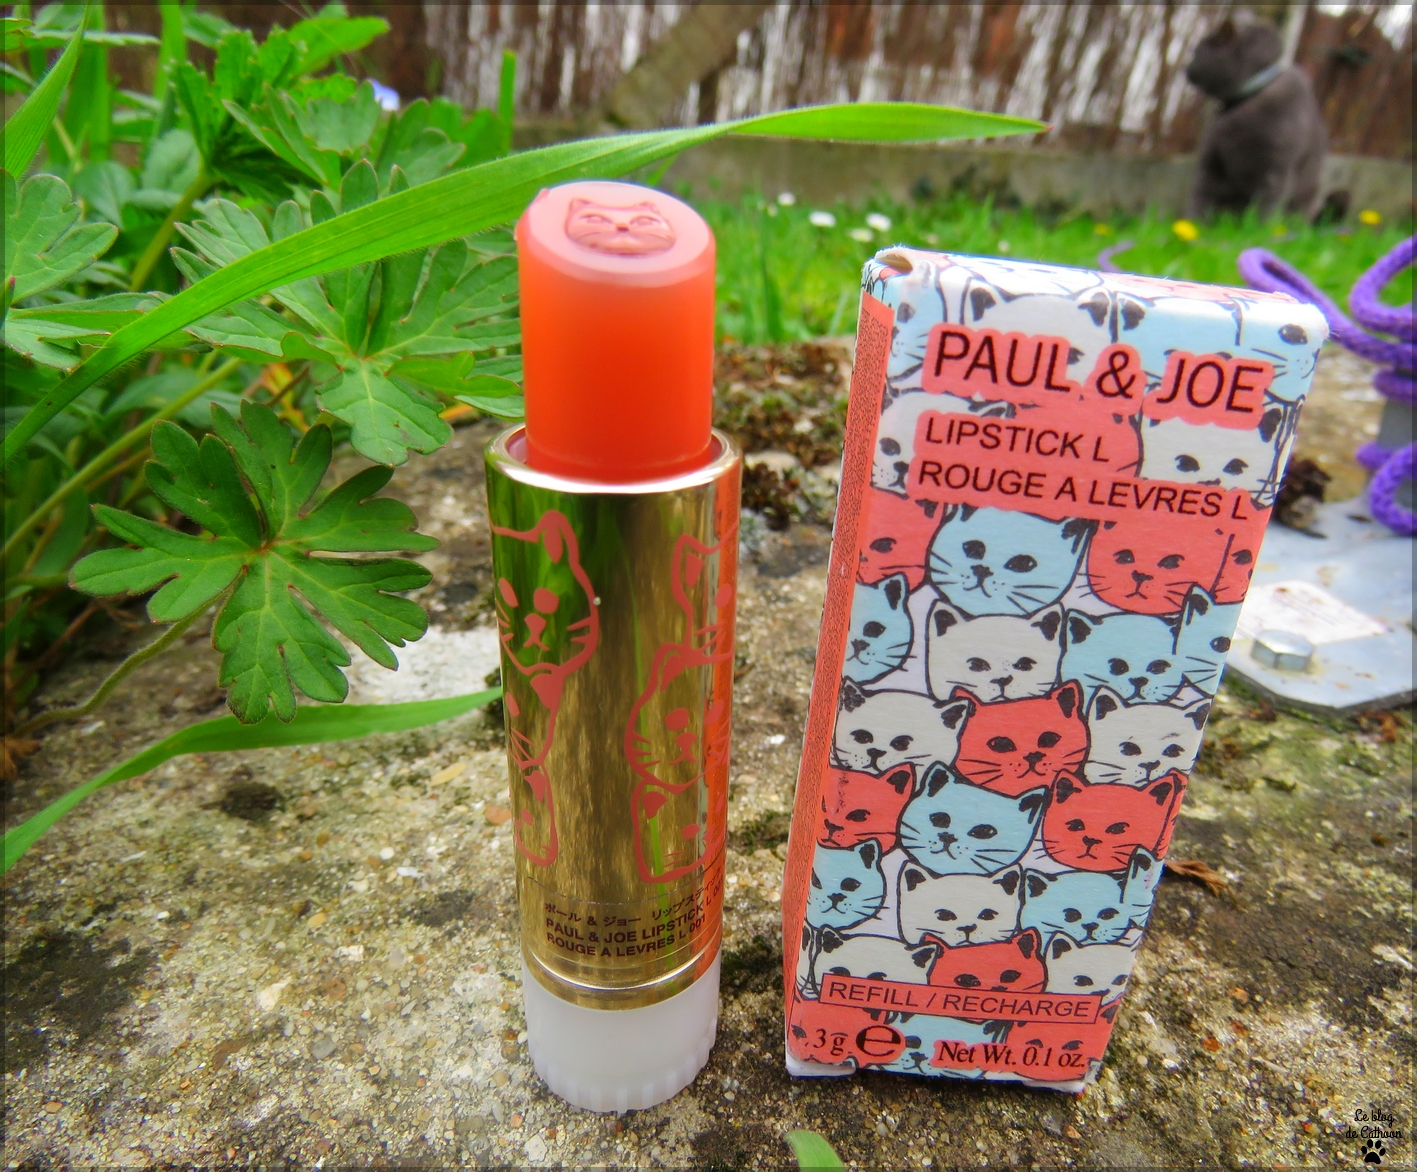 Lipstick L - Refill - Paul & Joe